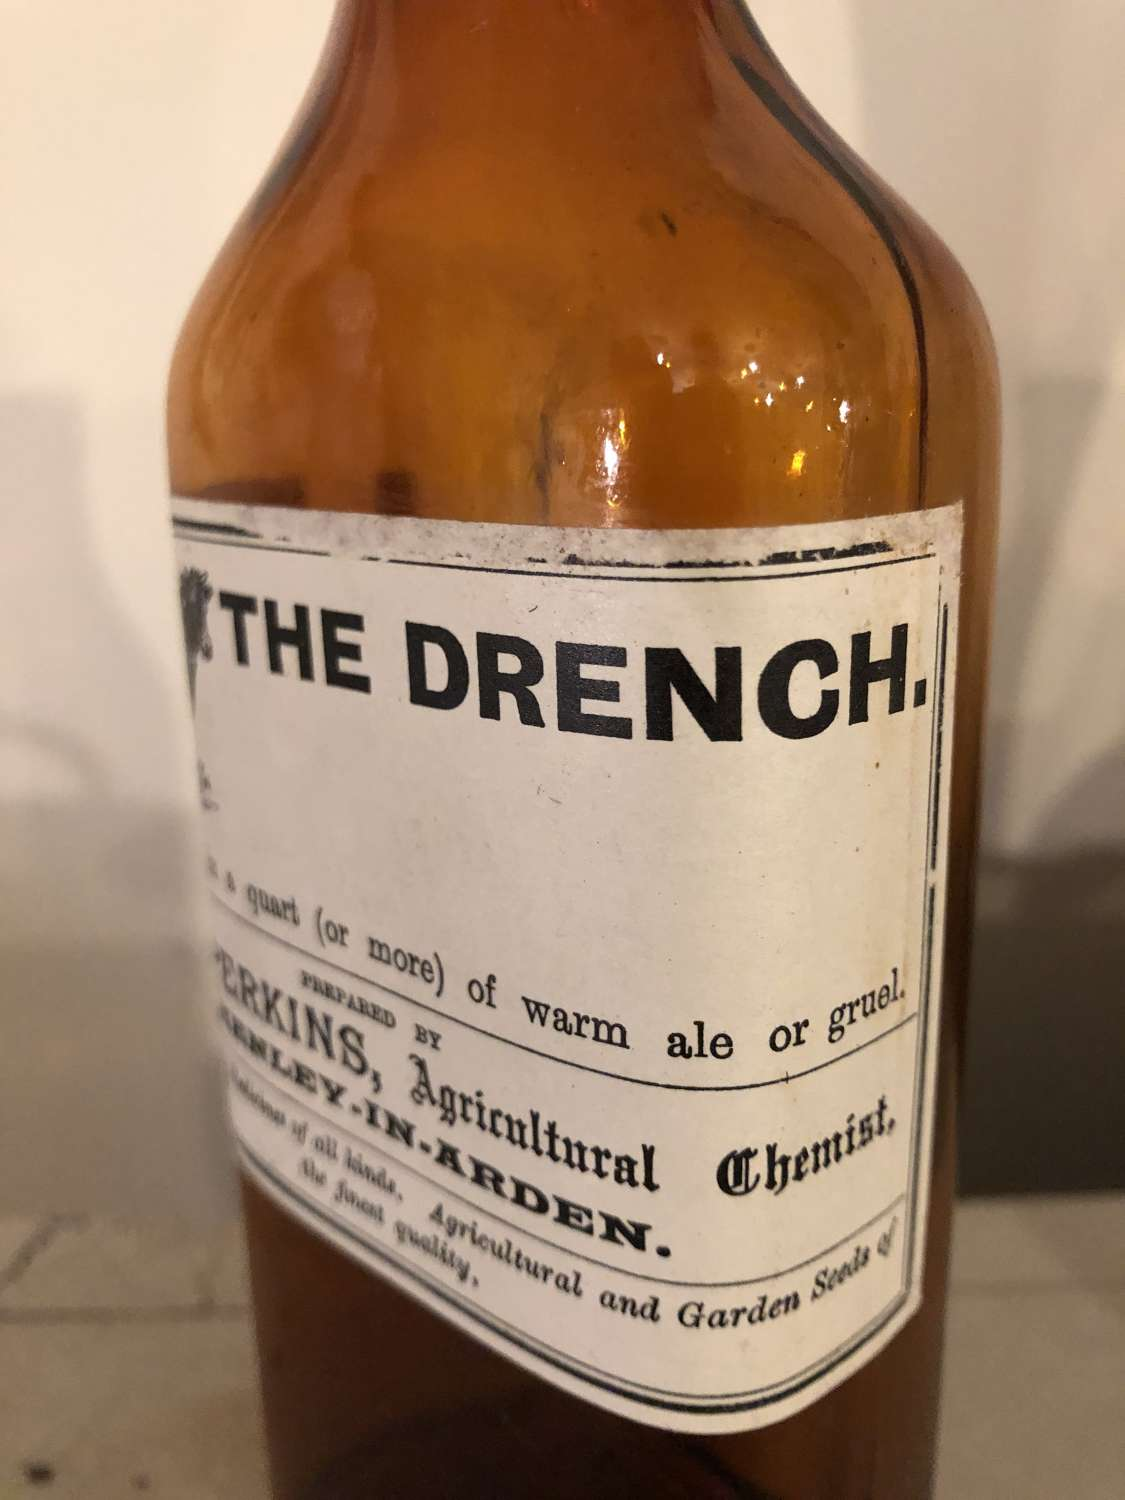 THE DRENCH medicine bottle